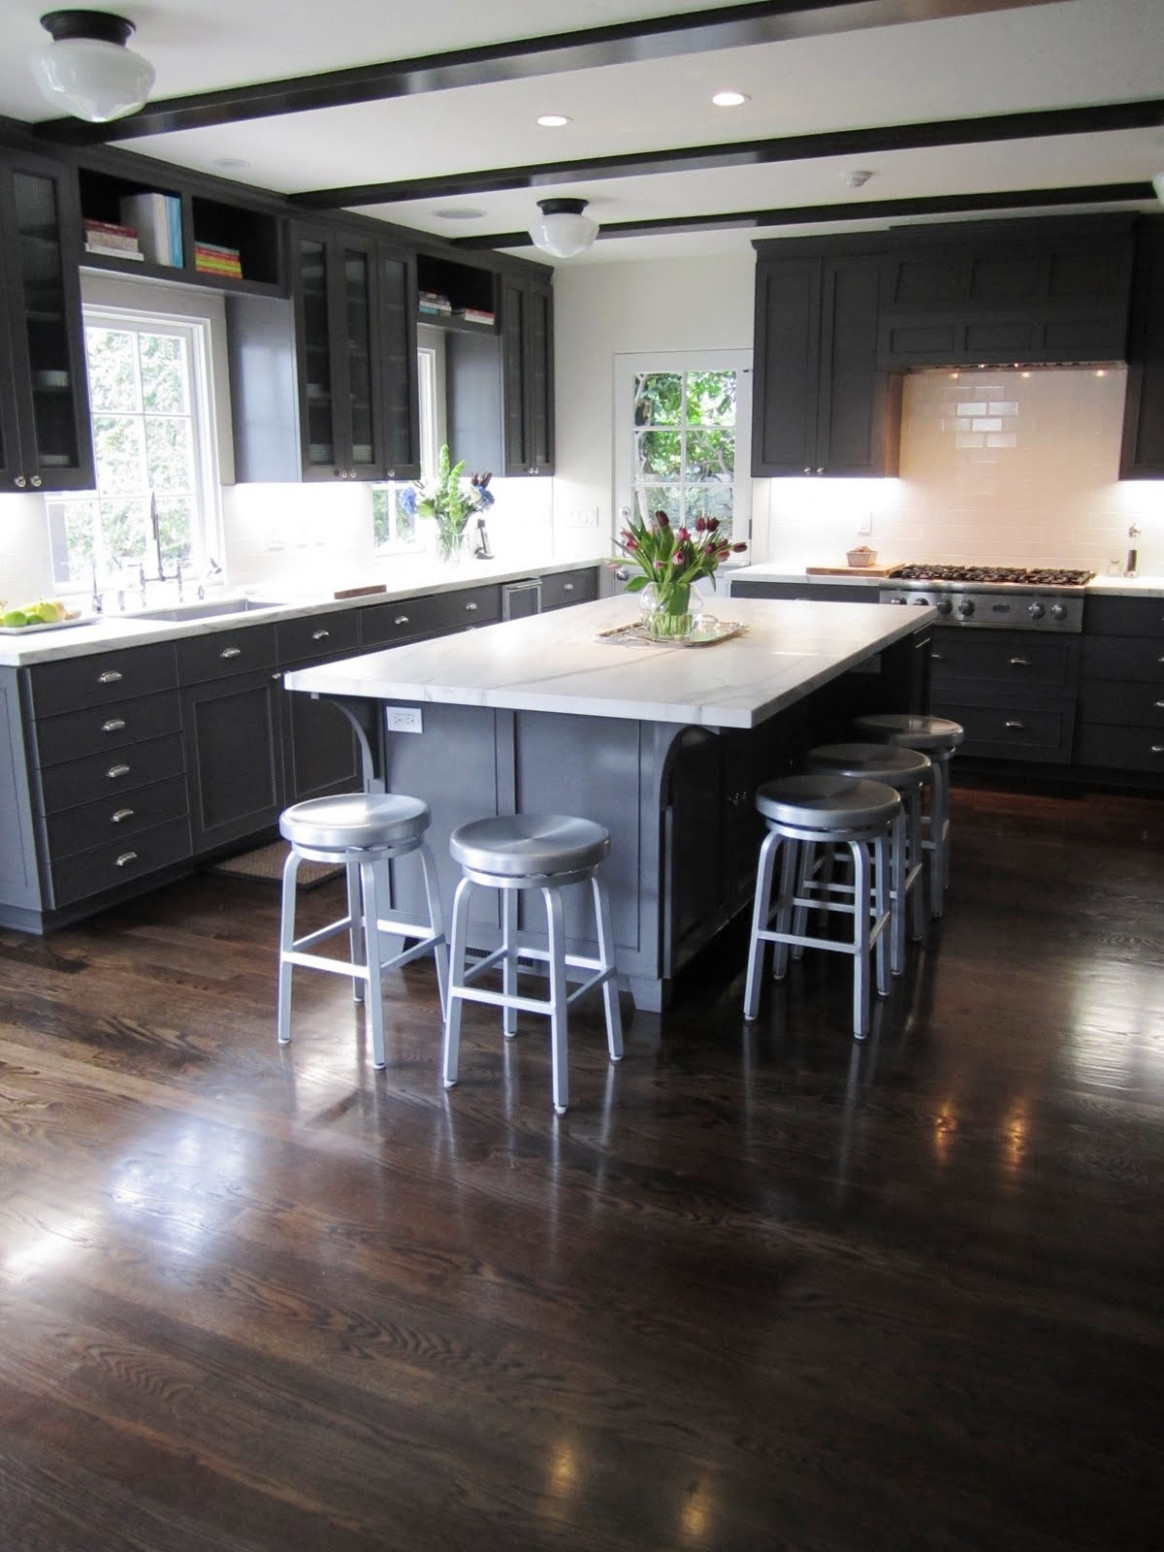 staining oak hardwood floors grey of dark wood cabinetry bathroom ideas jackolanternliquors pertaining to dark wood floors with grey walls kitchen floor dark wood floors with grey walls in